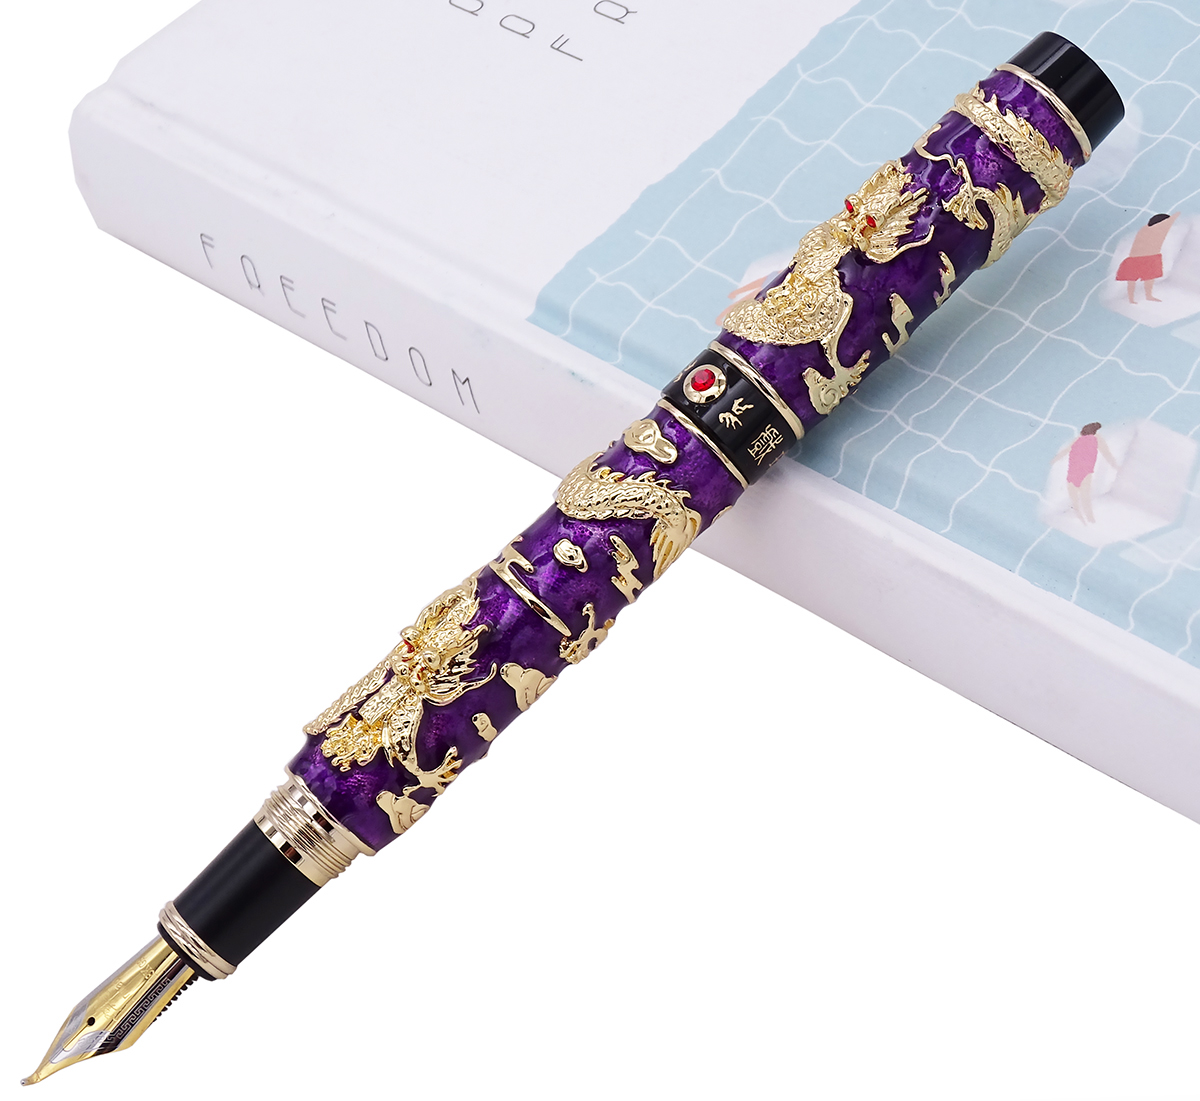 Jinhao Purple Cloisonne Calligraphy Fountain Pen Double Dragon Fude Bent Nib Advanced Craft Writing Gift for Business Office